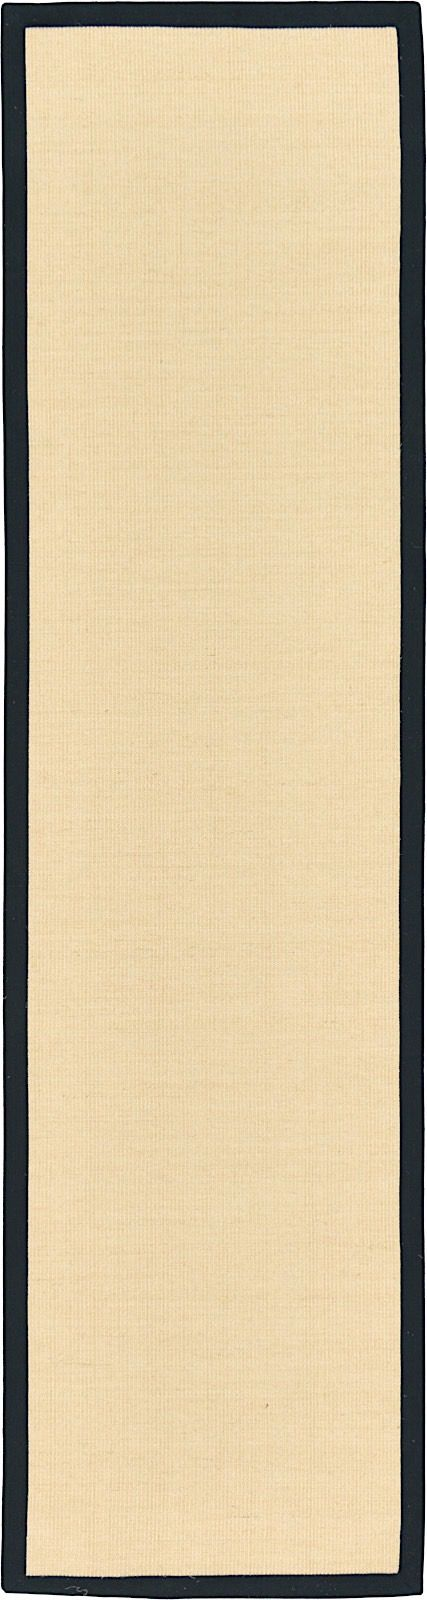 rivera solid/striped area rug collection